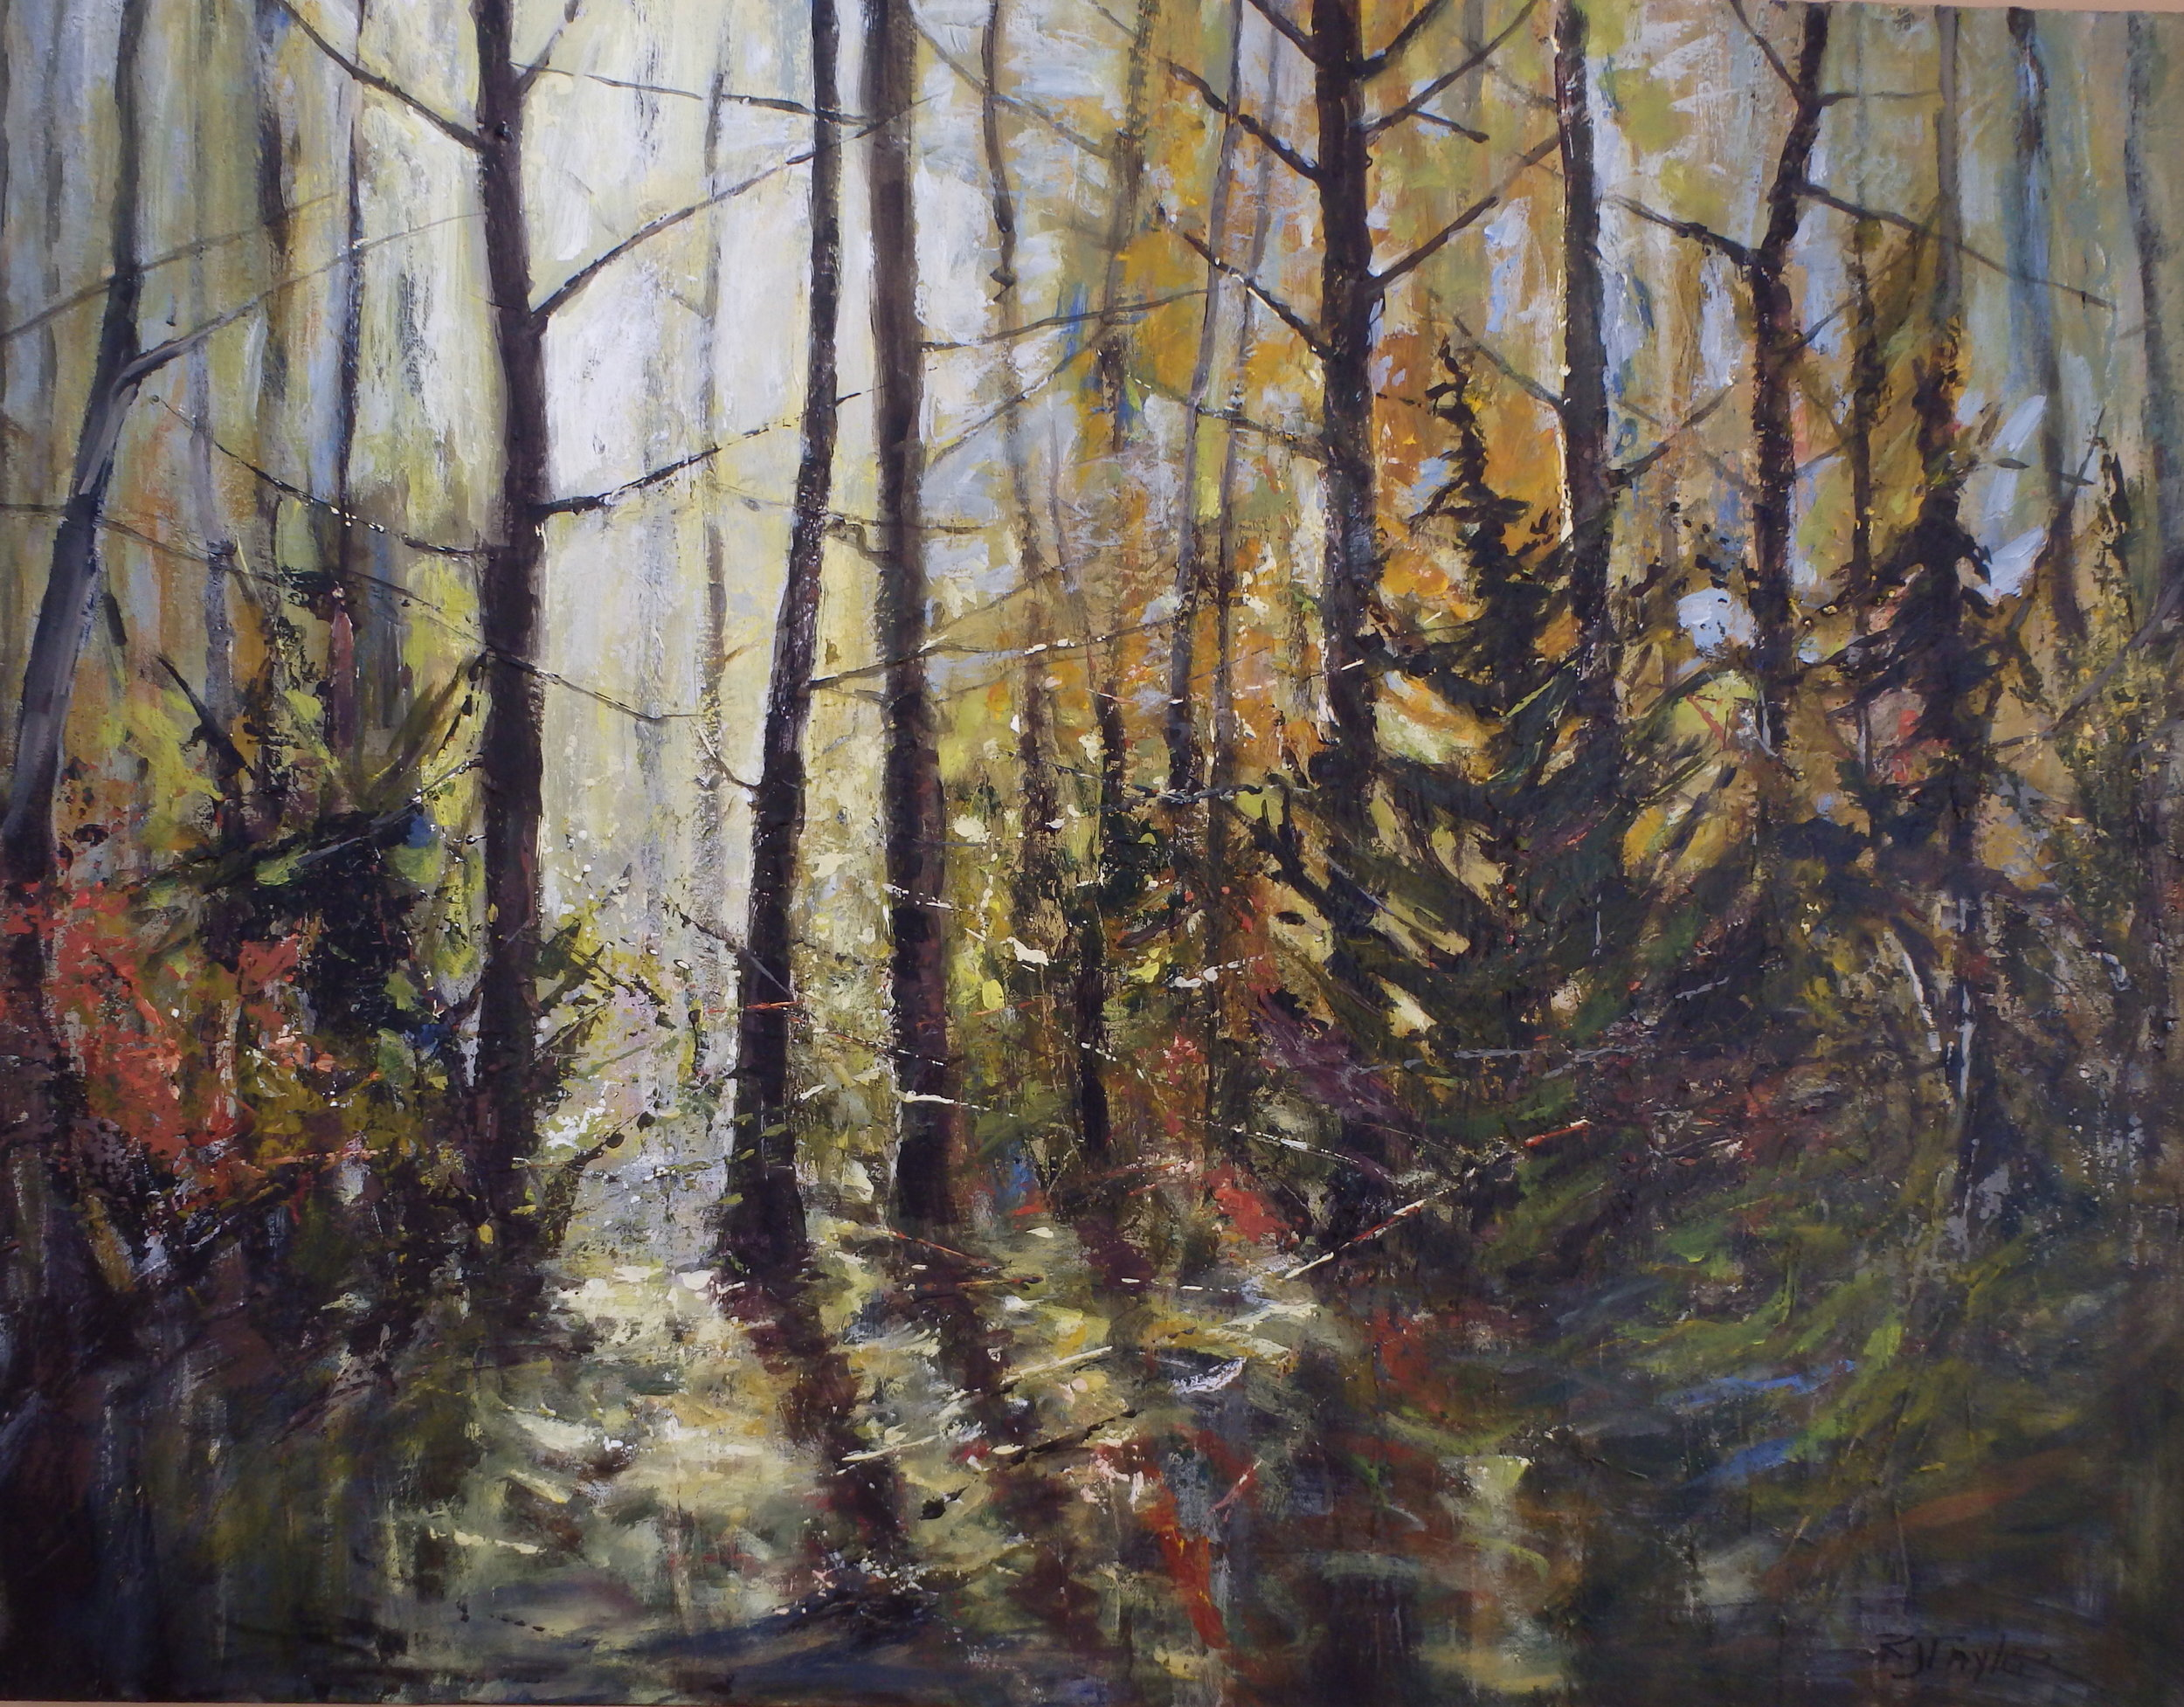 FOREST SPRUCE 30X40 SOLD